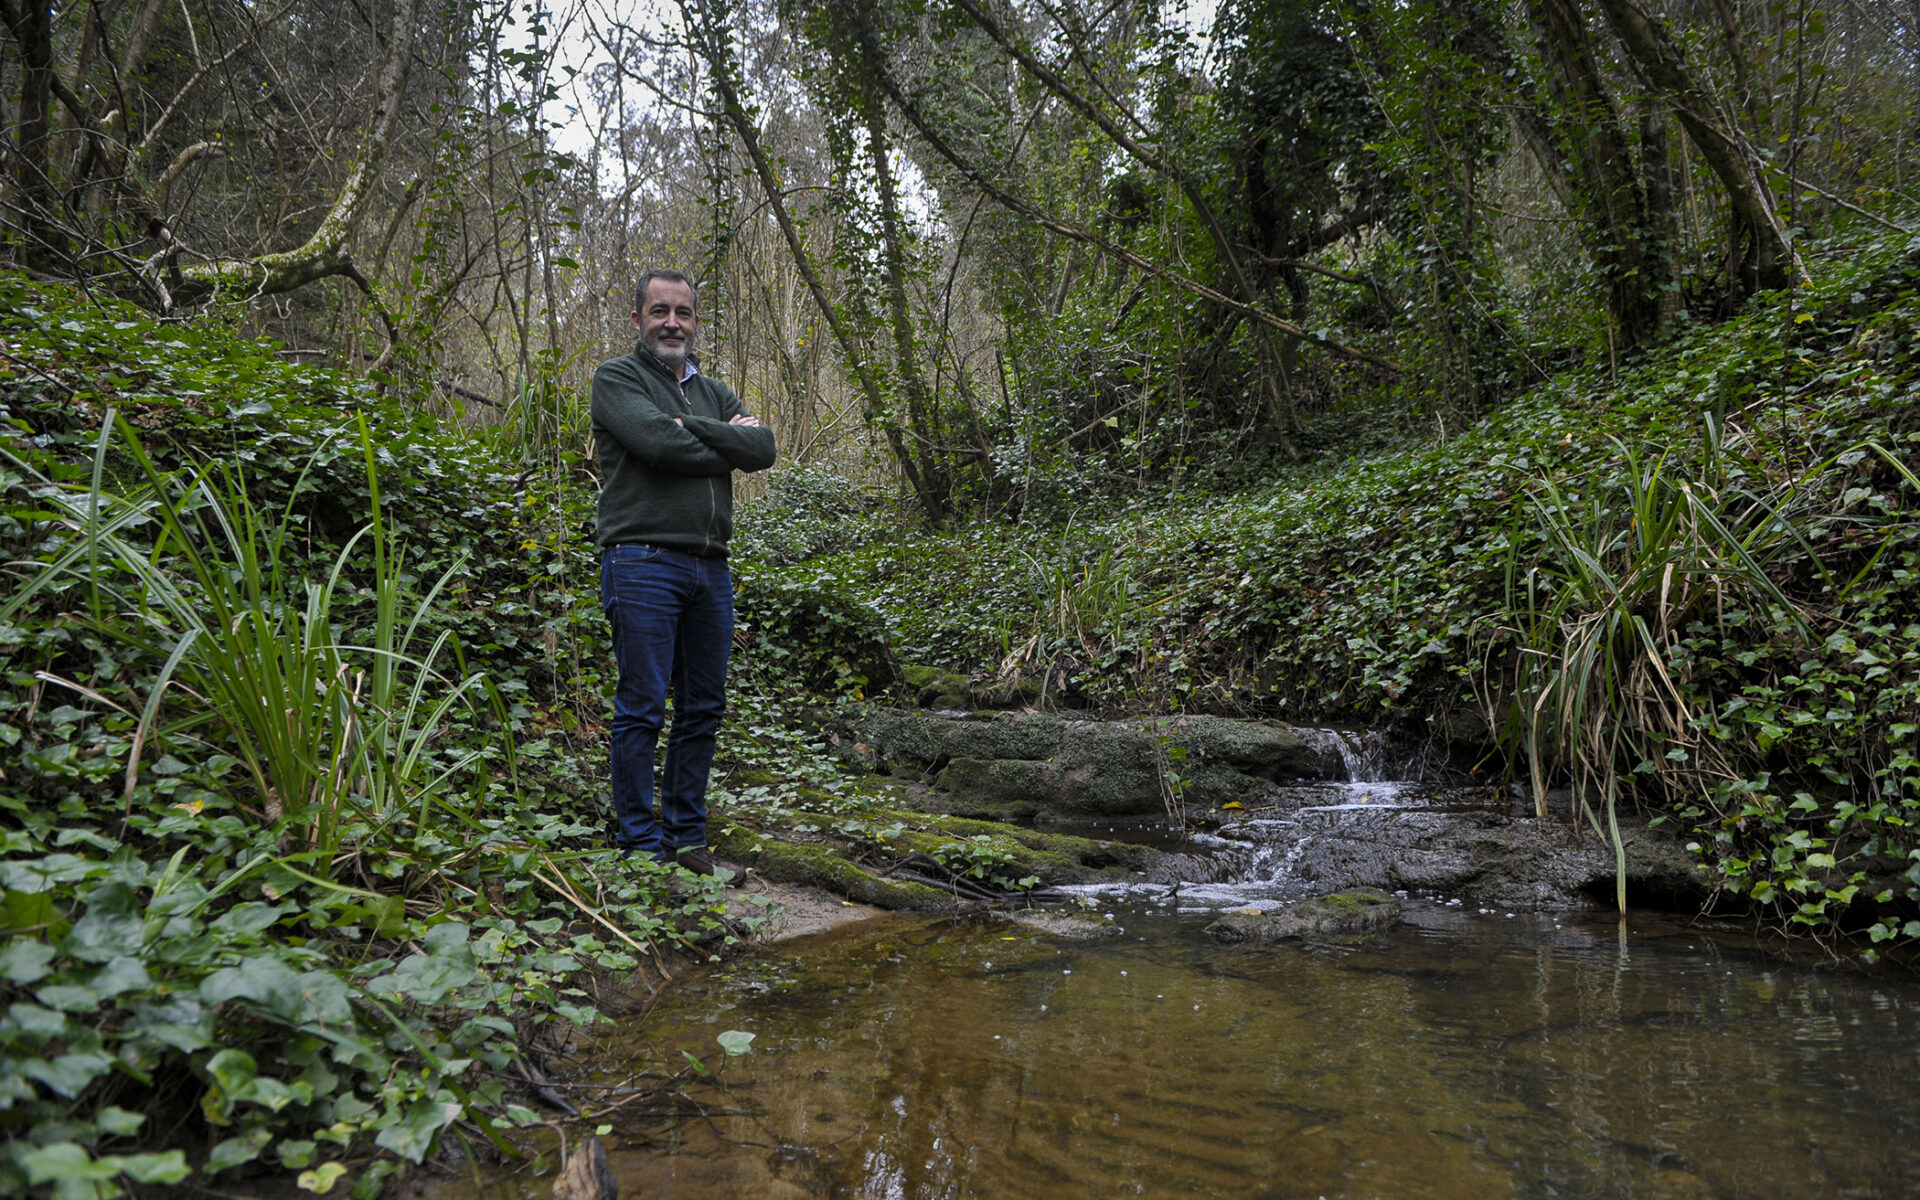 Pedro Serafim, the head of Biodiversity and Forest Certification at Altri Florestal in an area of riparian forest at Quinta do Furadouro, Óbidos